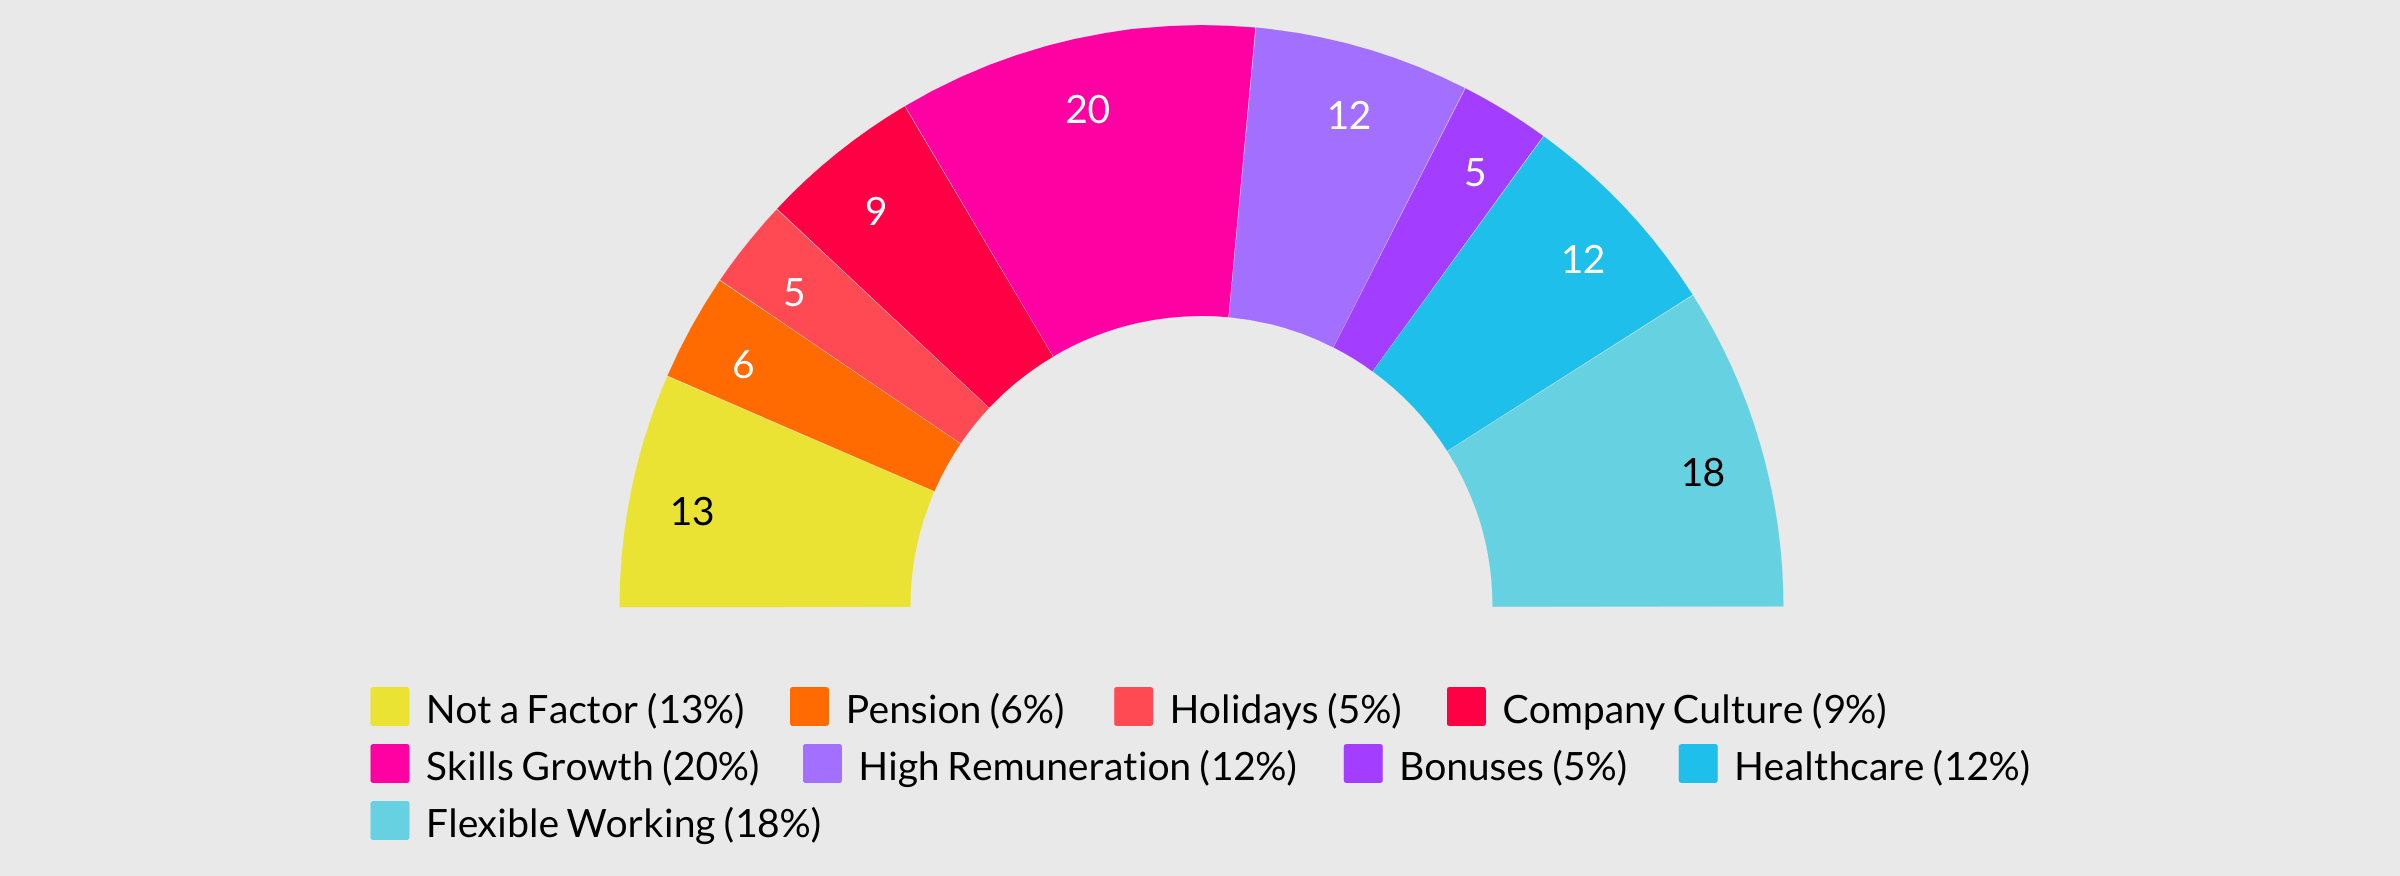 Chart comparing breakdown of benefits offered